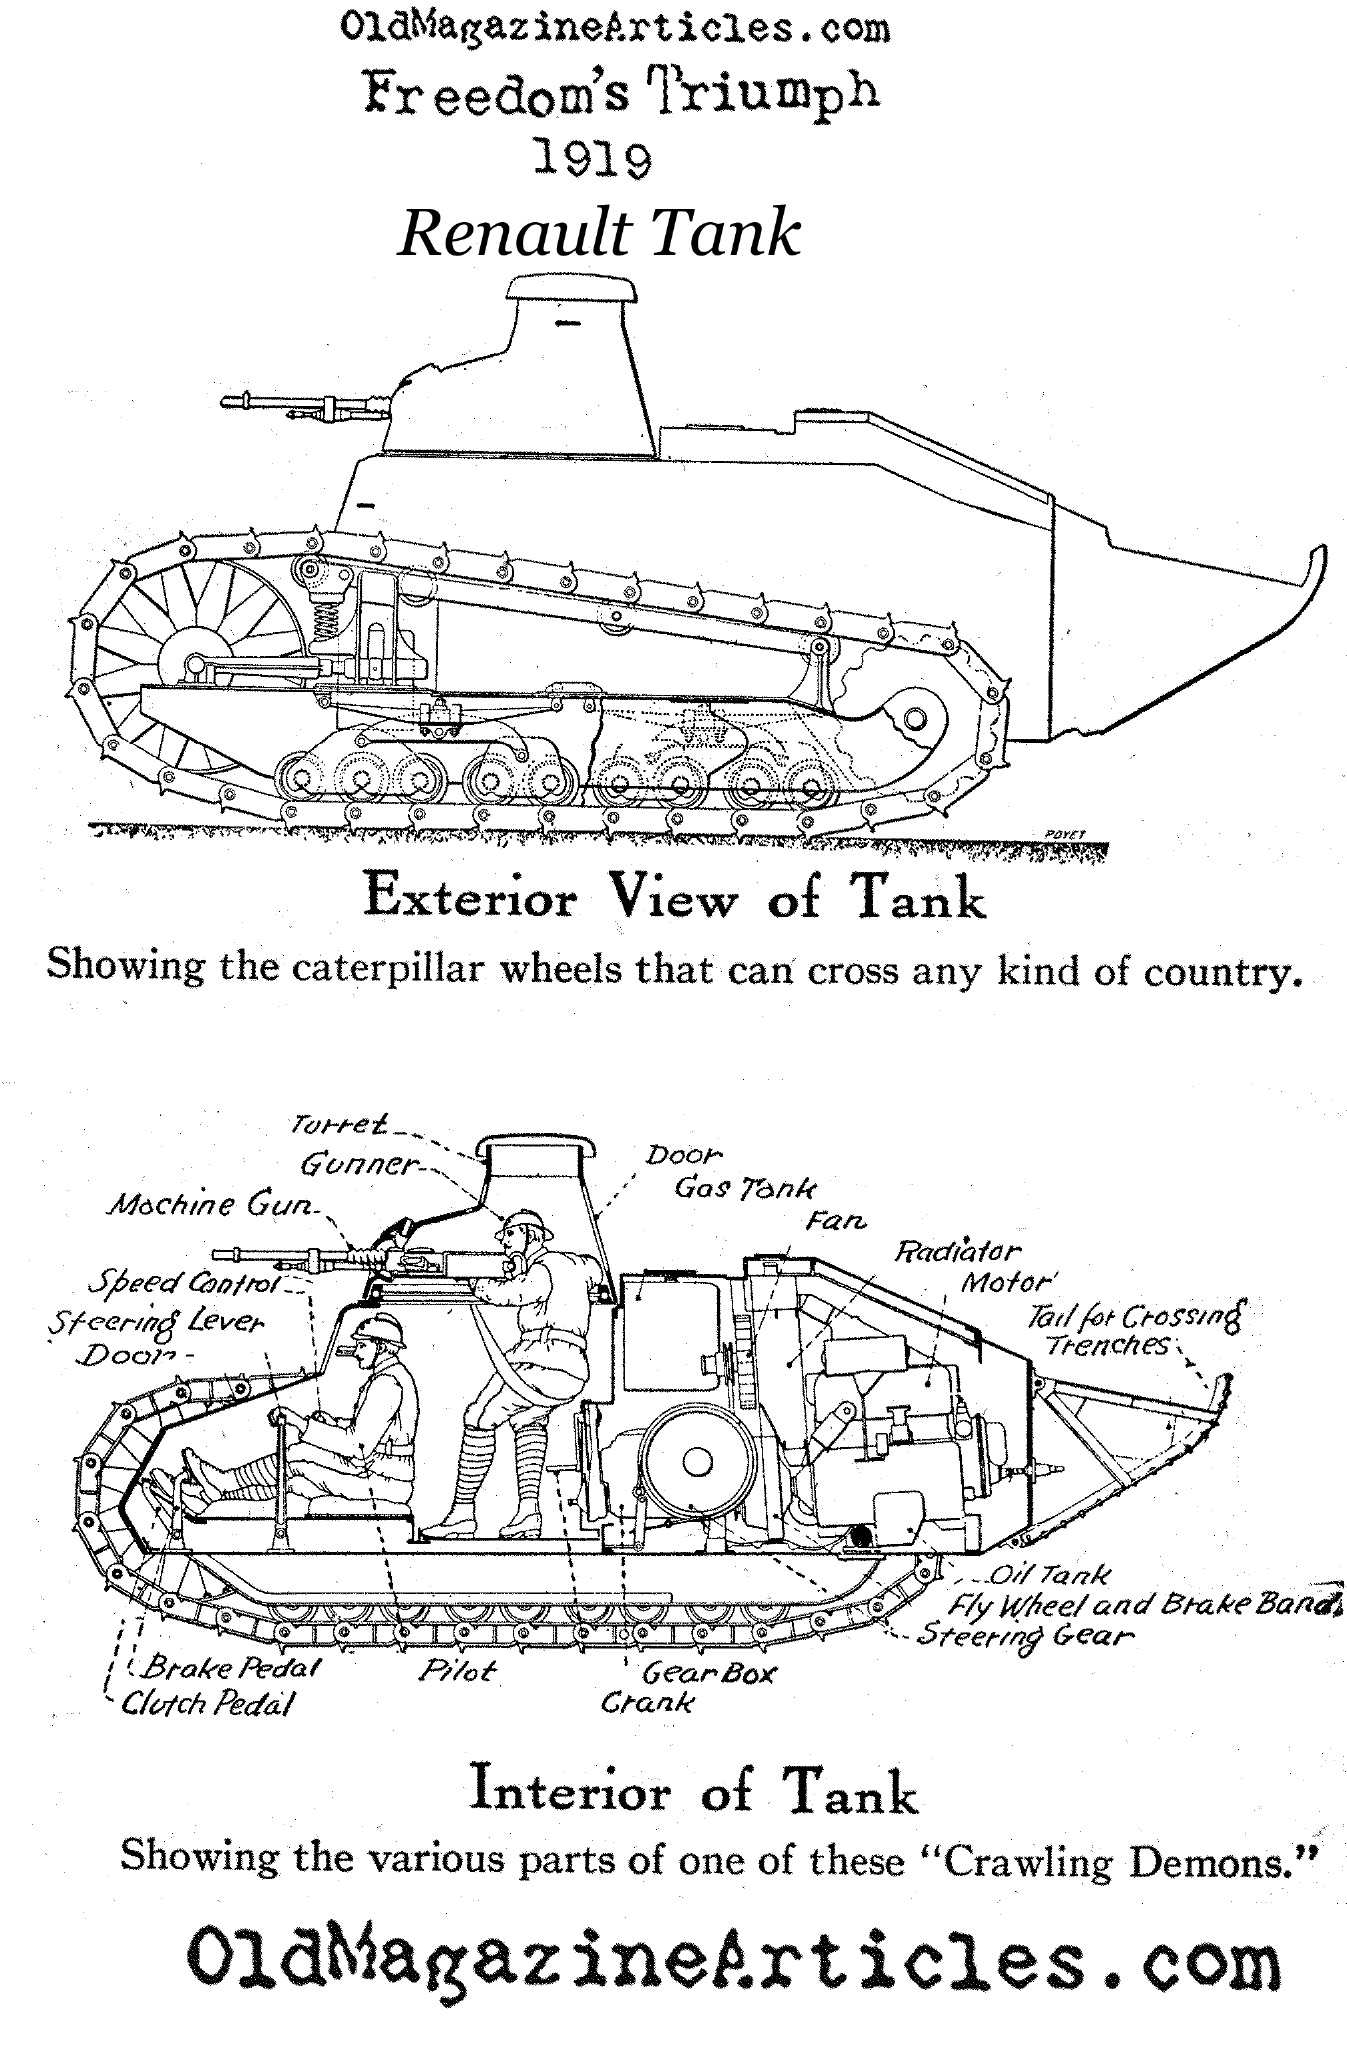 chevy gas tank diagram ww1 renault tank drawing,ww1 renault tank diagram,world ... #1